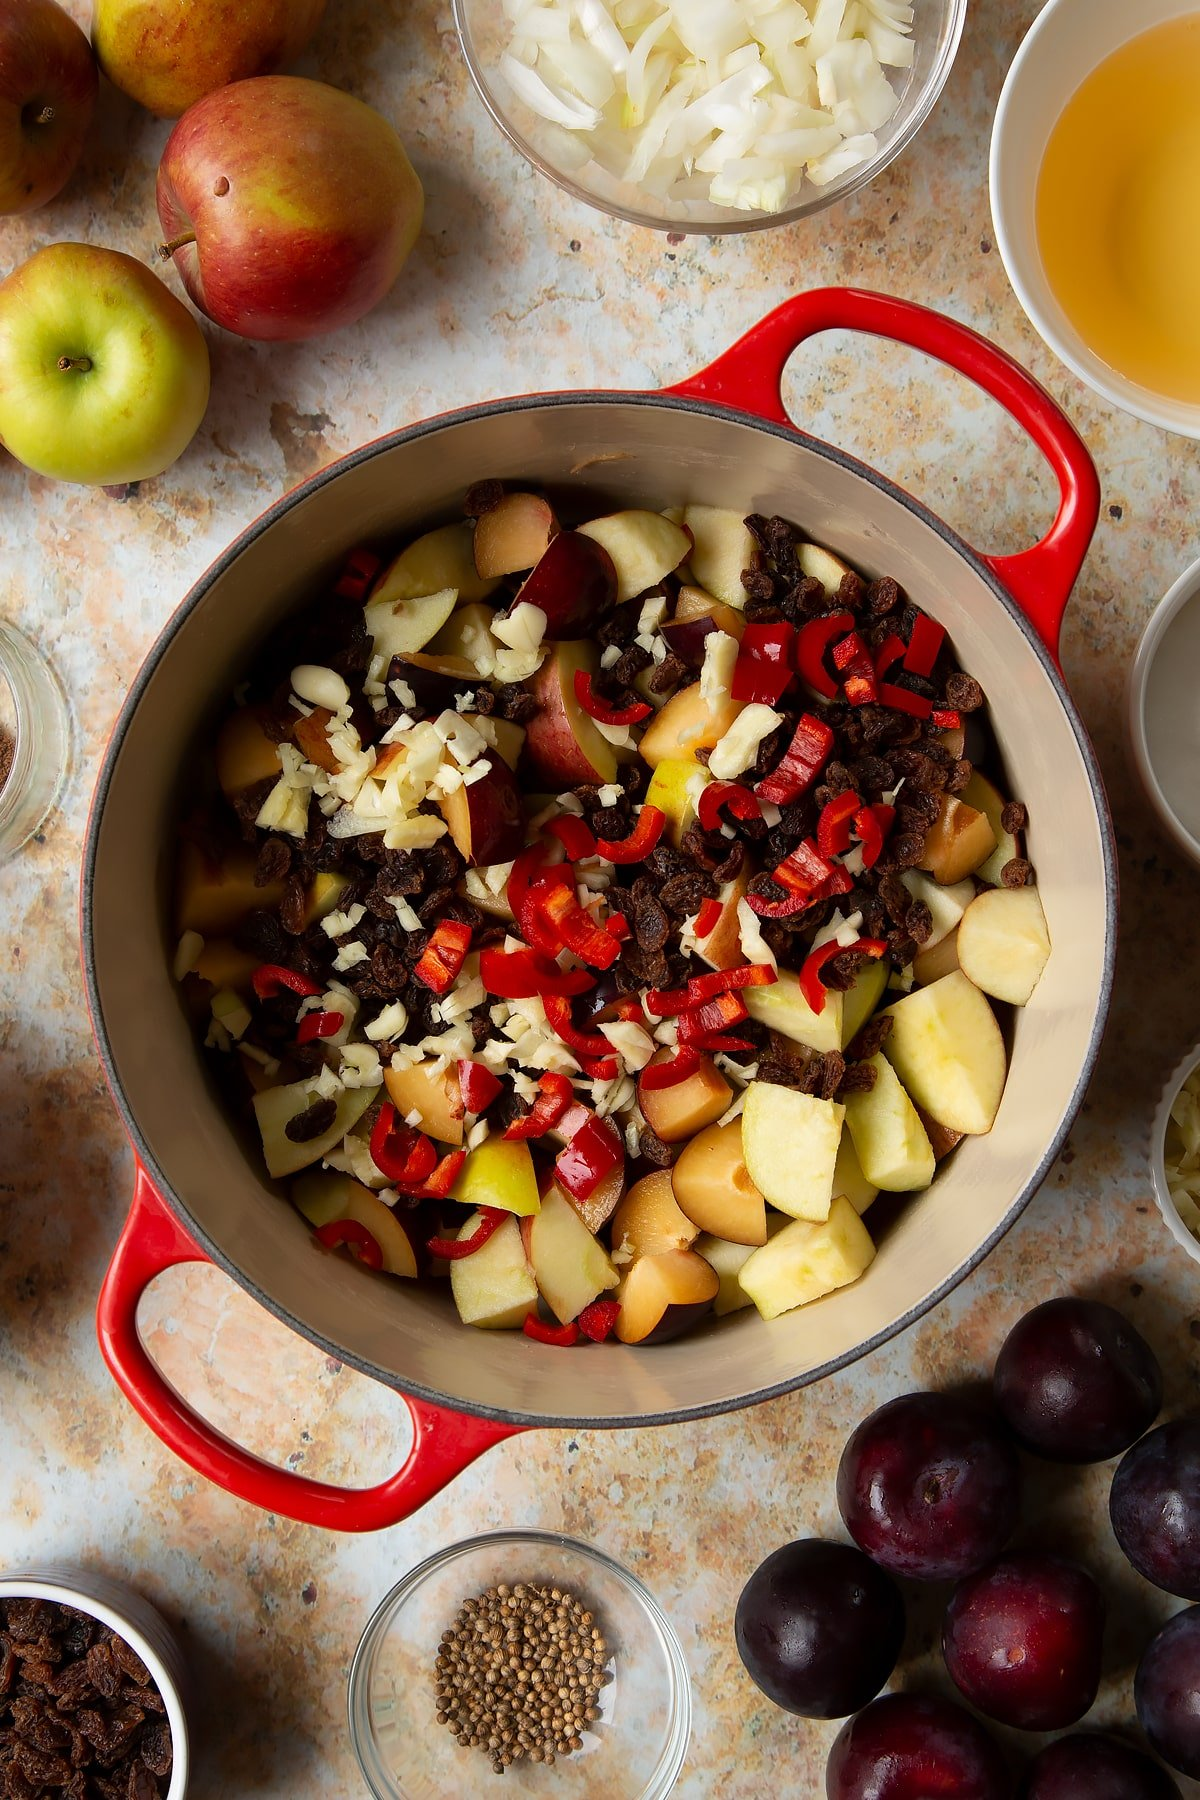 Chopped plums, apples, raisins, chilli and garlic in a large pan. Ingredients to make a fruit chutney recipe surround the pan.